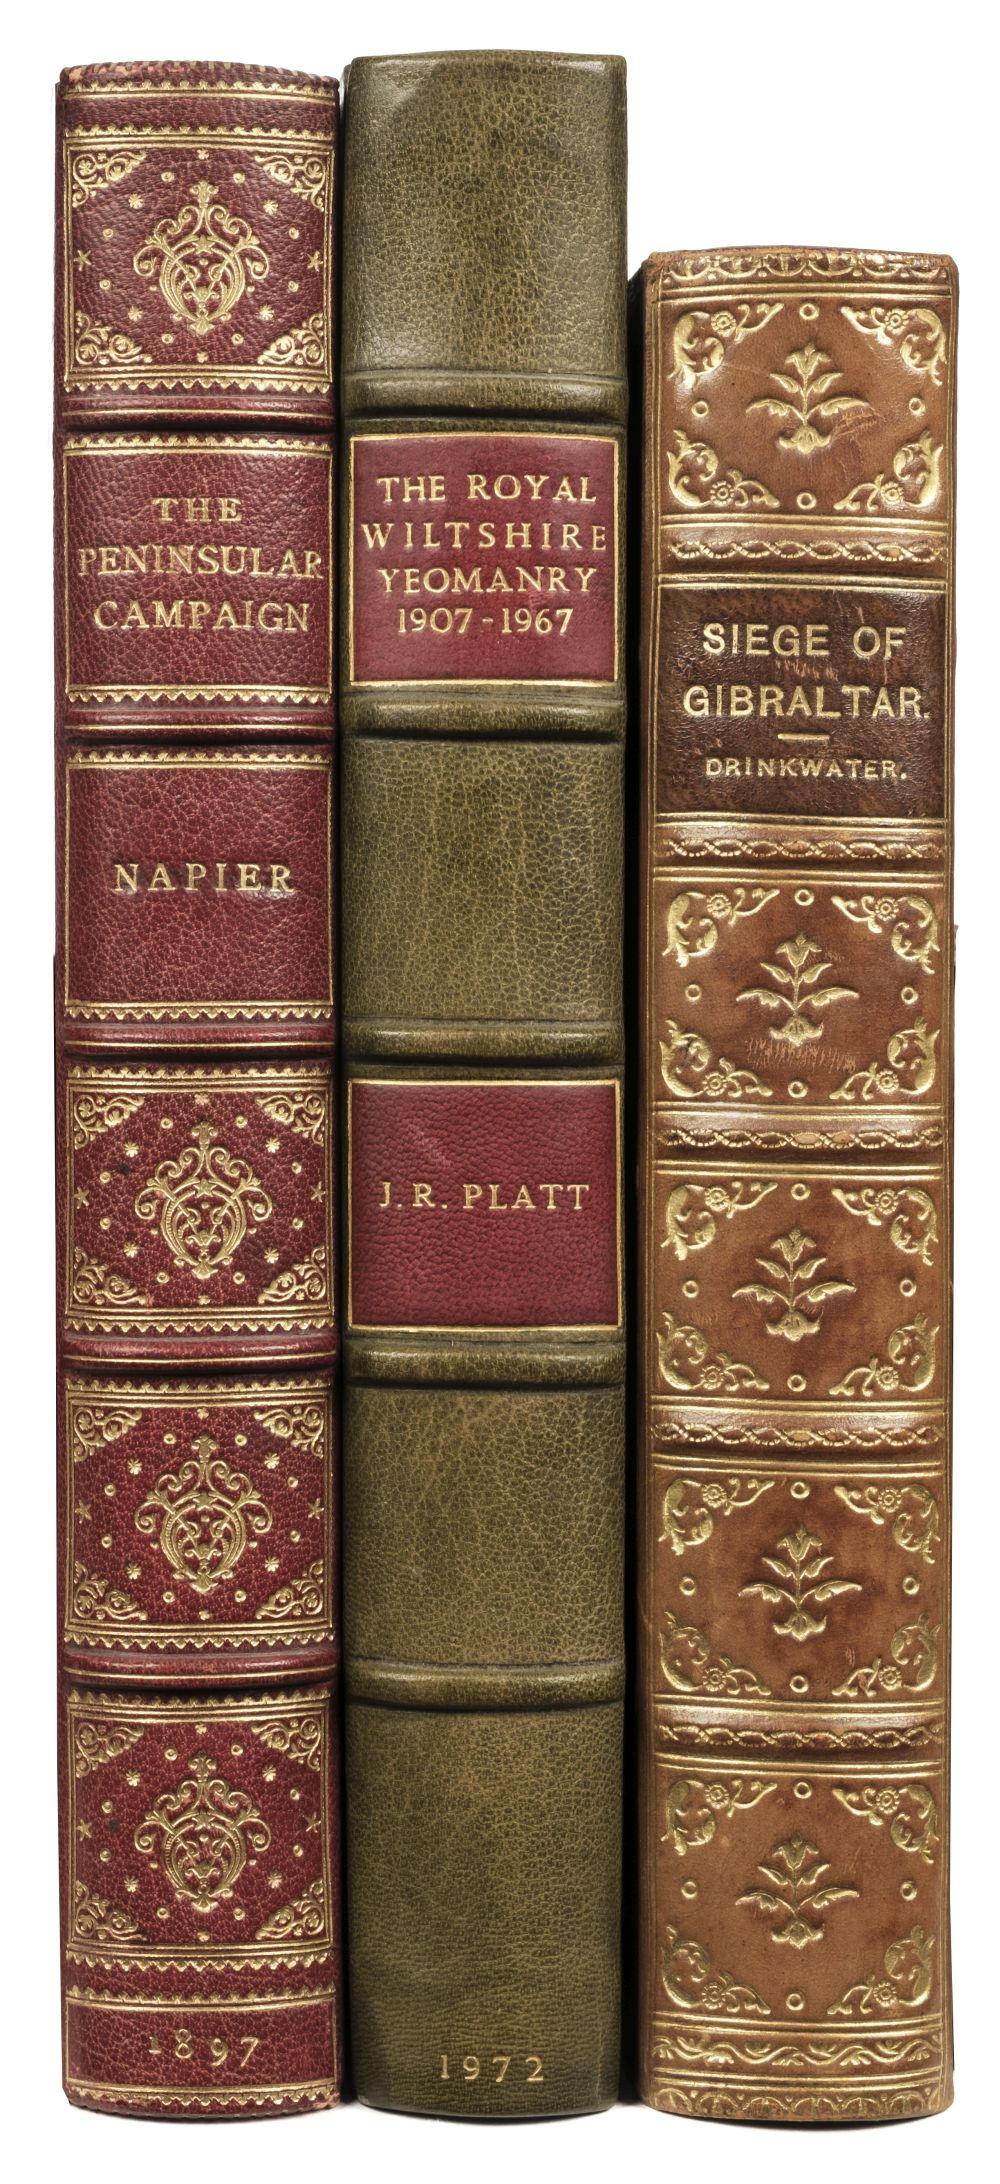 Dobson (William T.) A narrative of the Peninsular Campaign, 1897